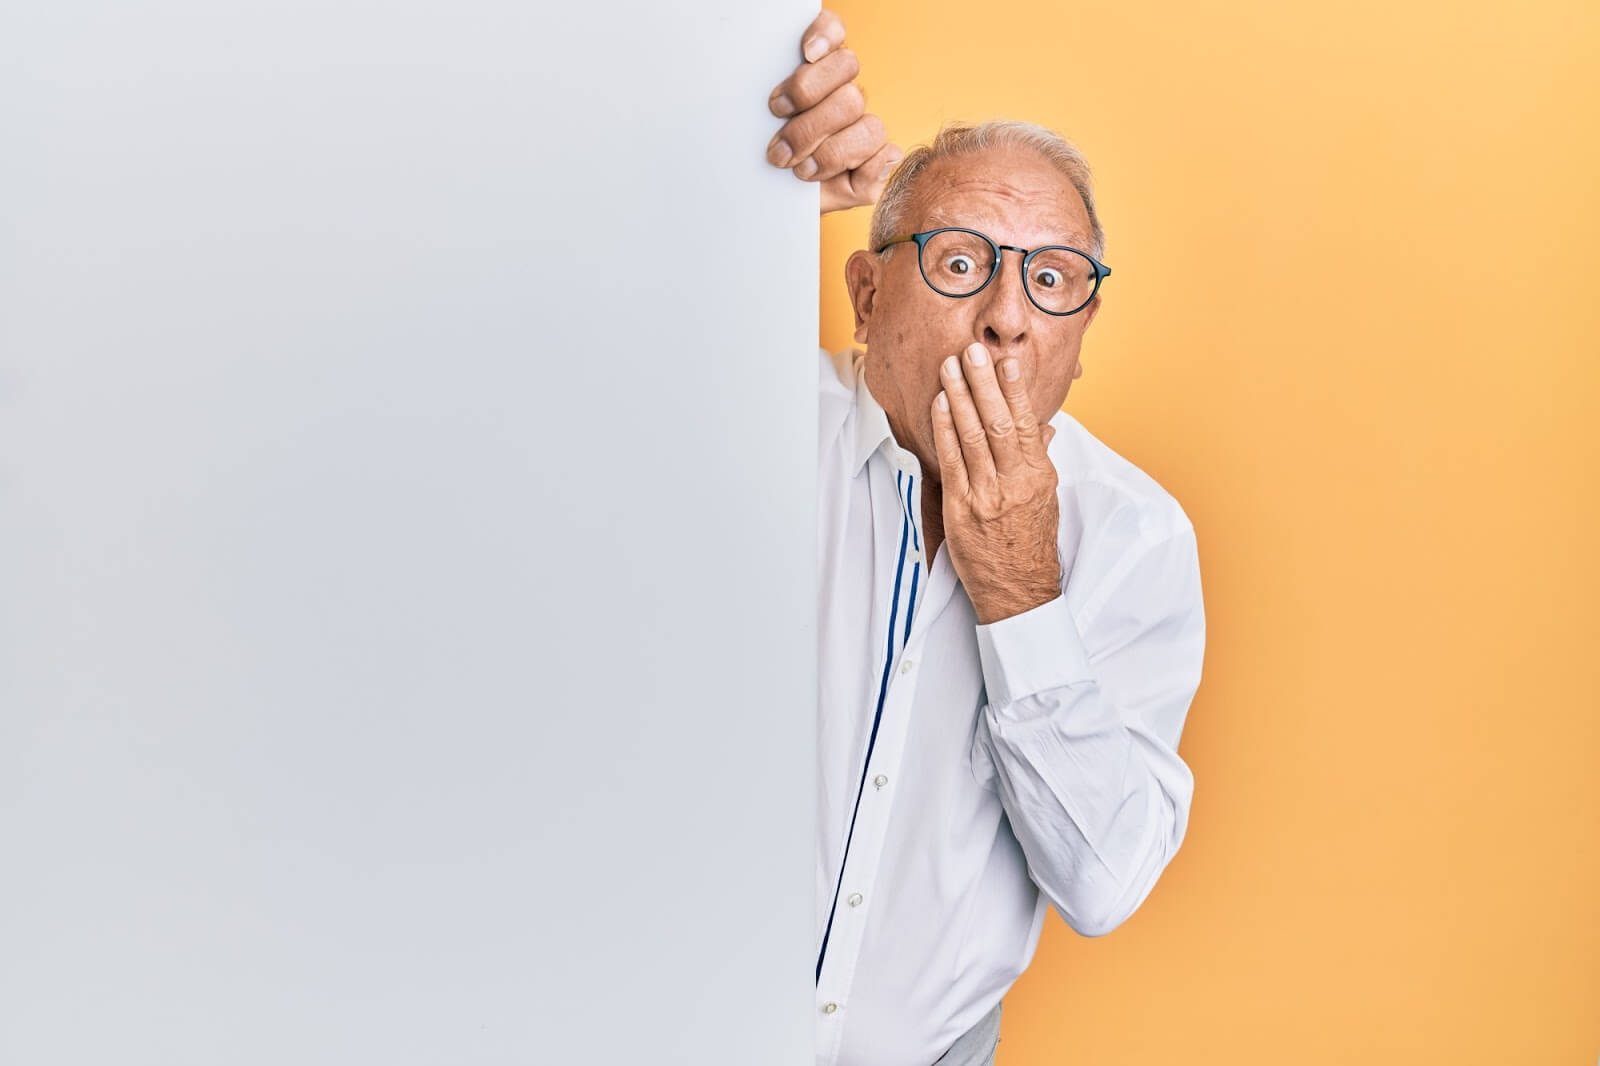 a male senior covering his mouth with one hand in shock